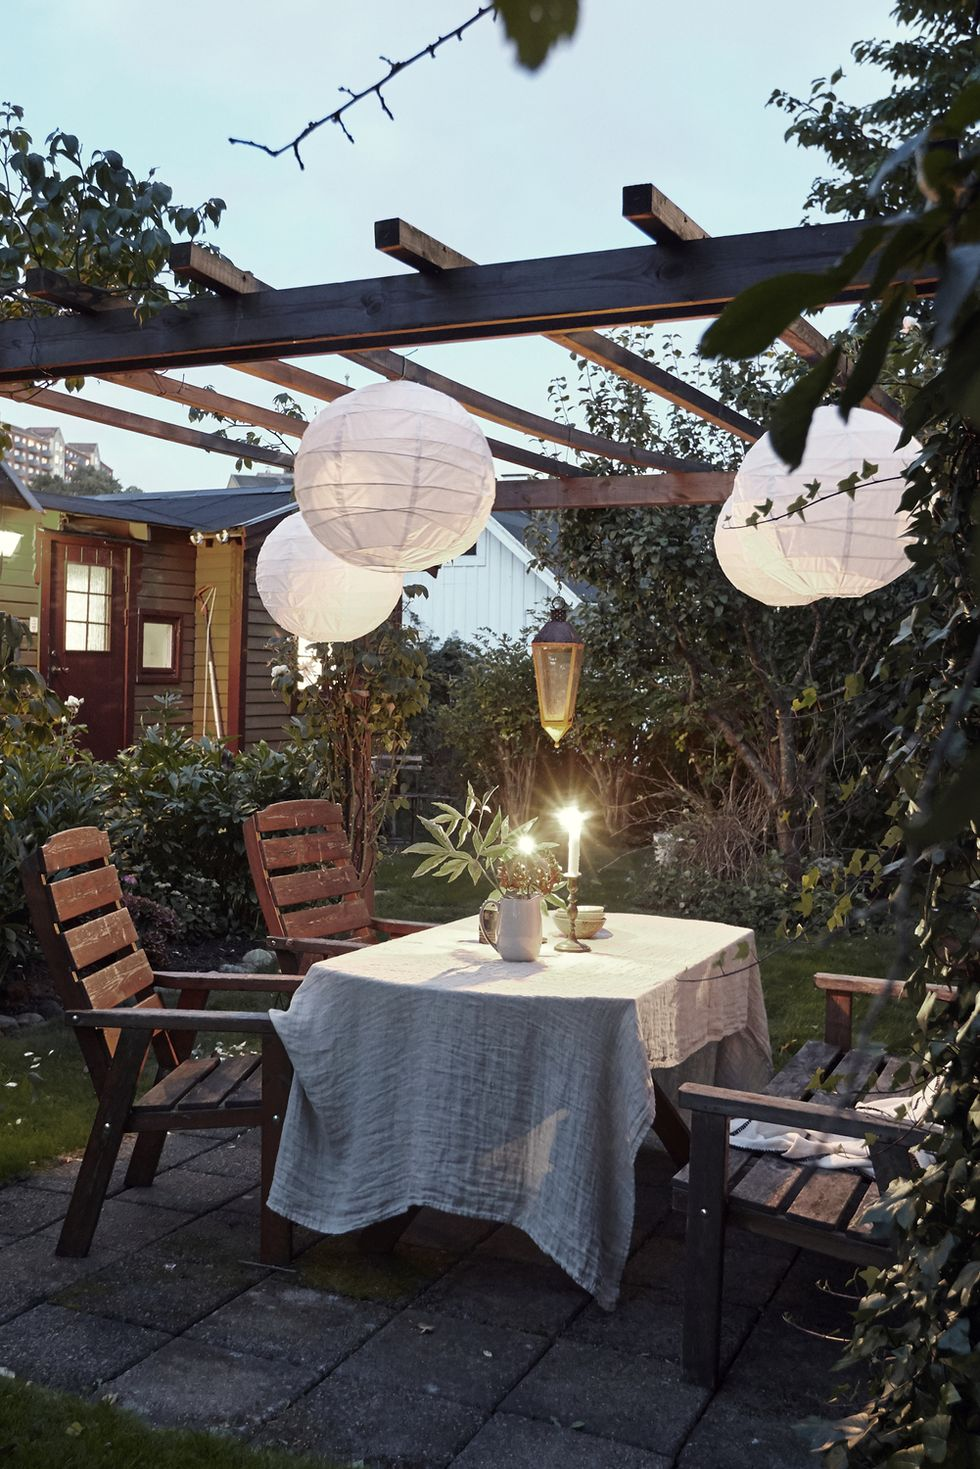 Lighting is a must to make your deck useful day and night. Source: Good Housekeeping